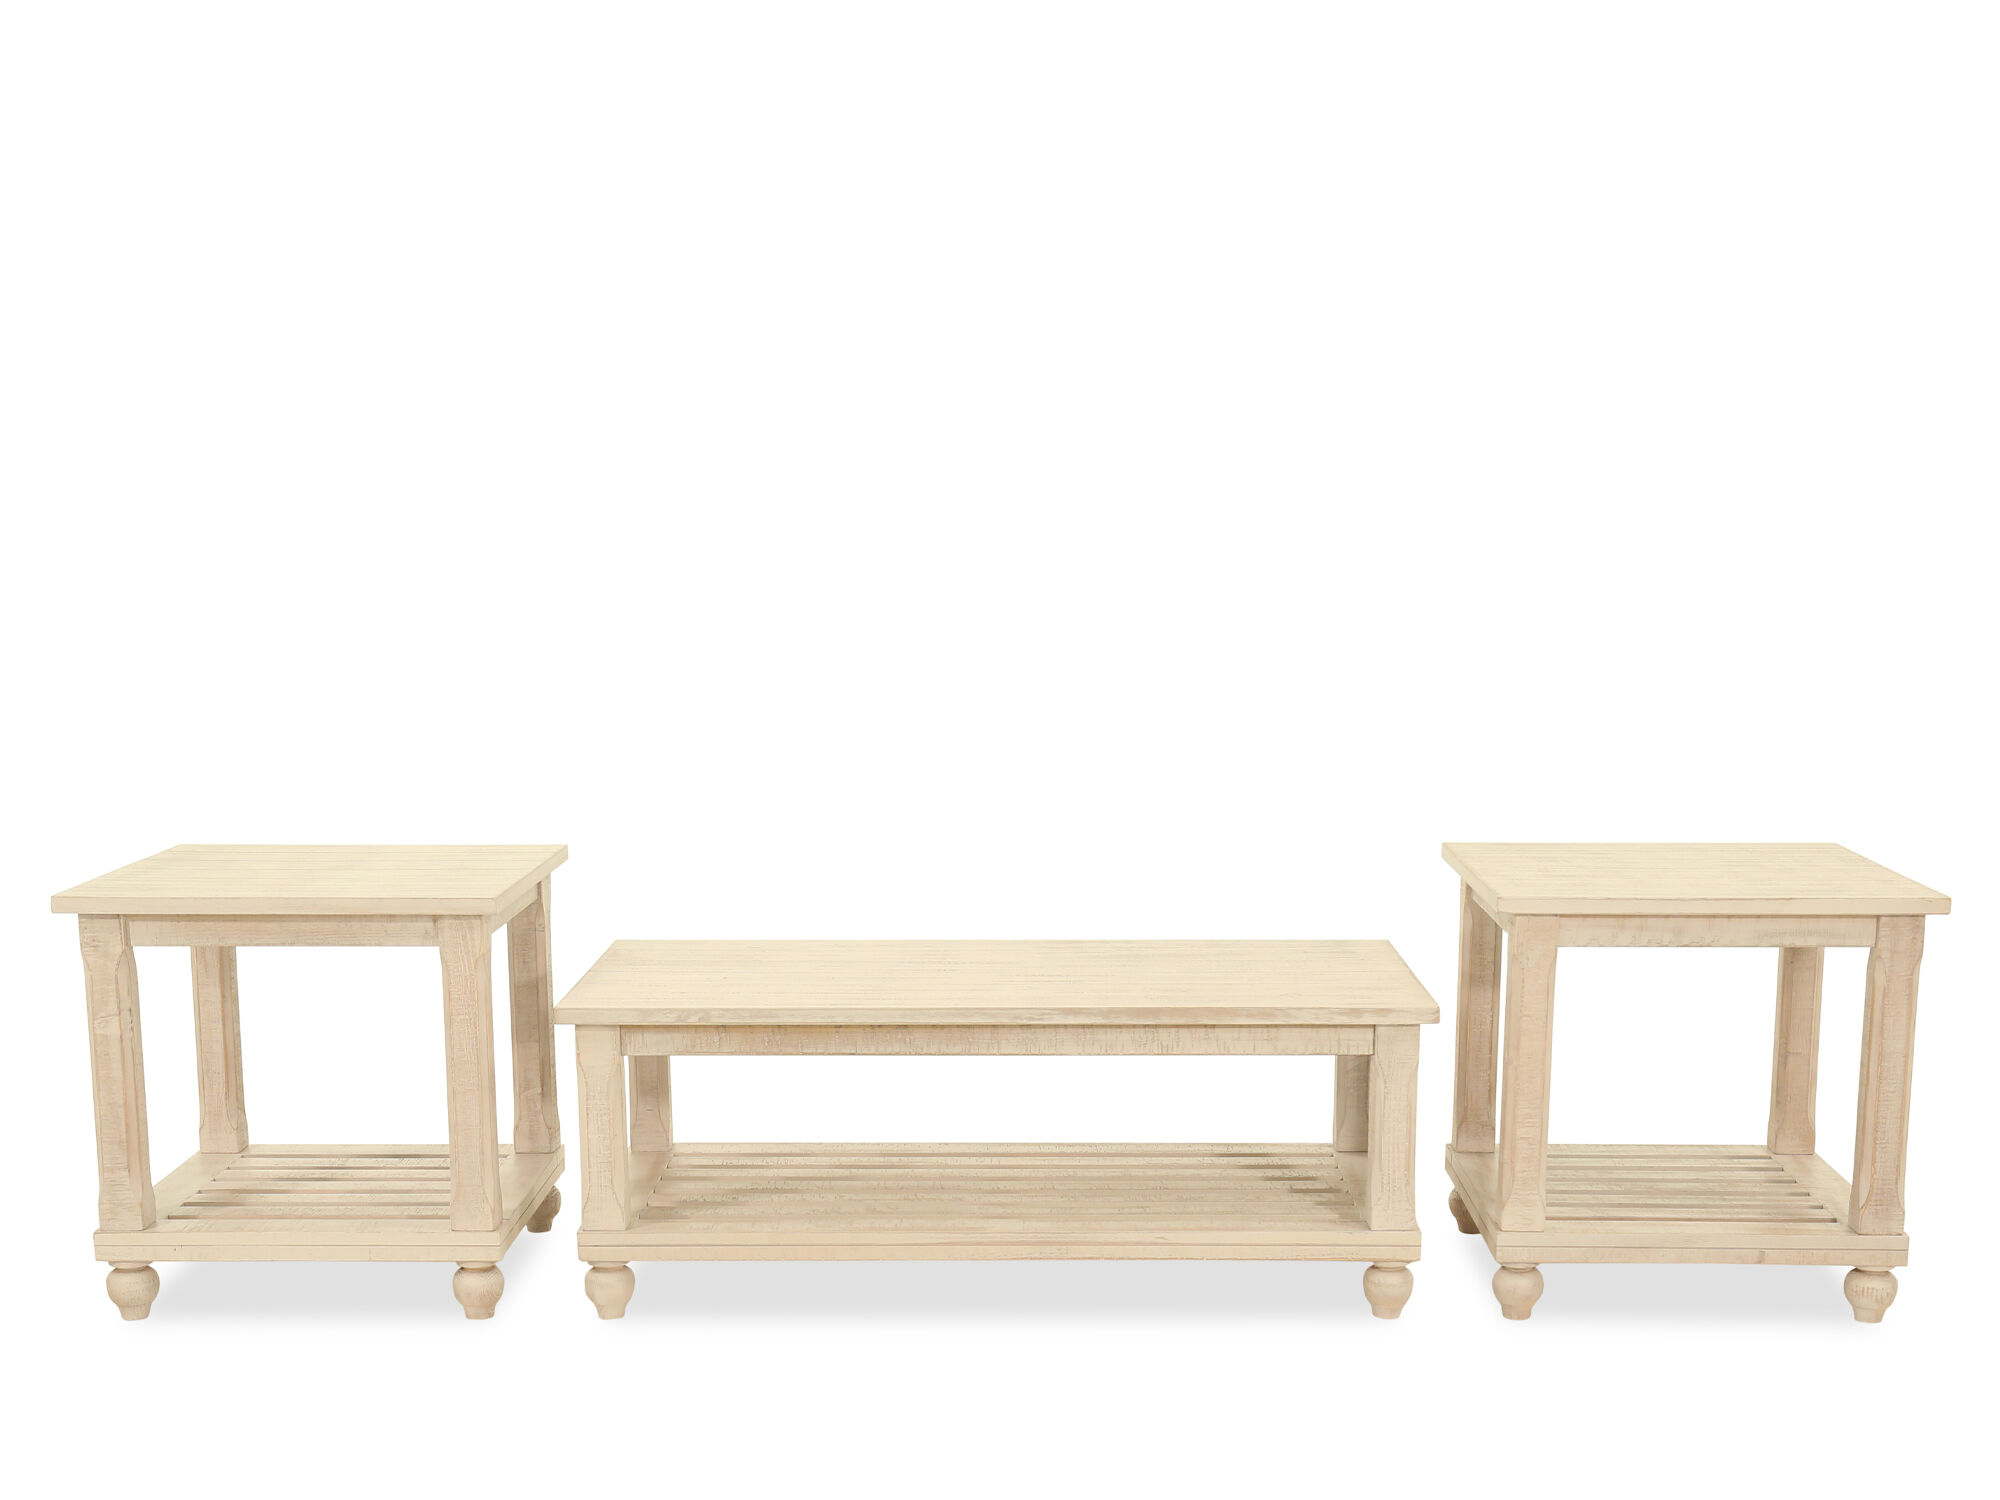 Three Piece Casual Table Set In White Mathis Brothers Furniture